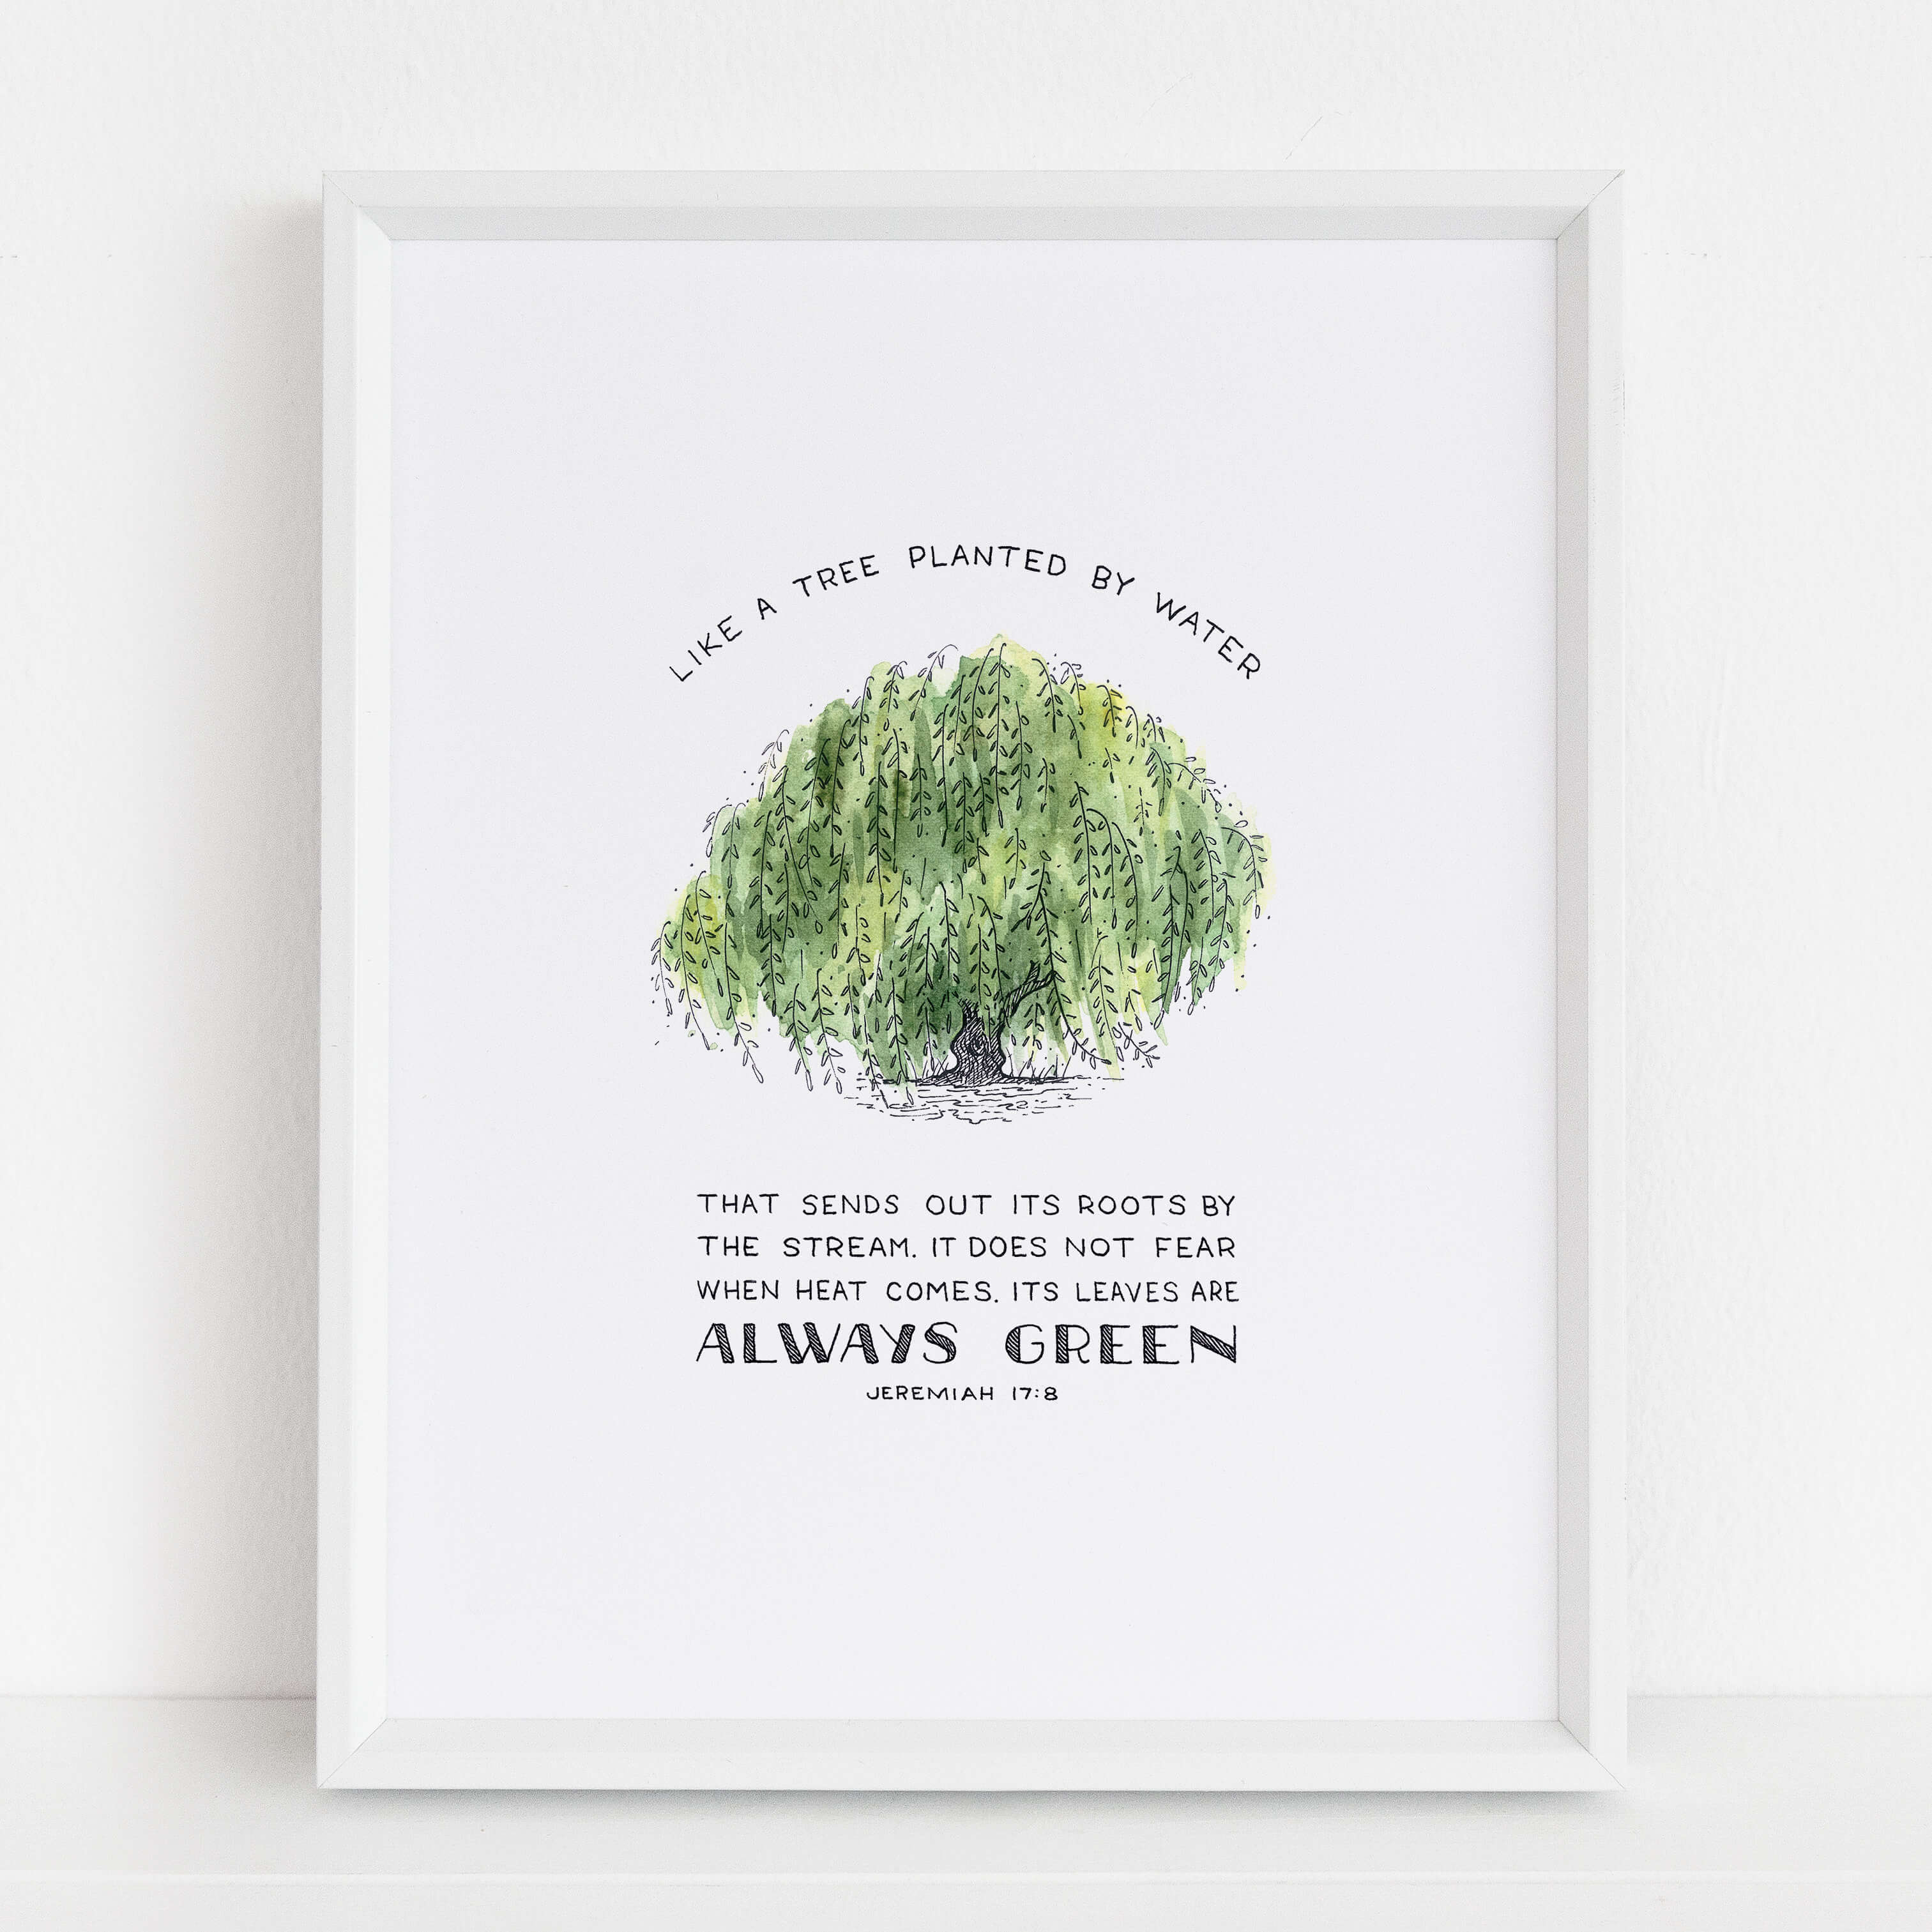 Framed Tree Planted by Water Art Print | Jeremiah 17:8